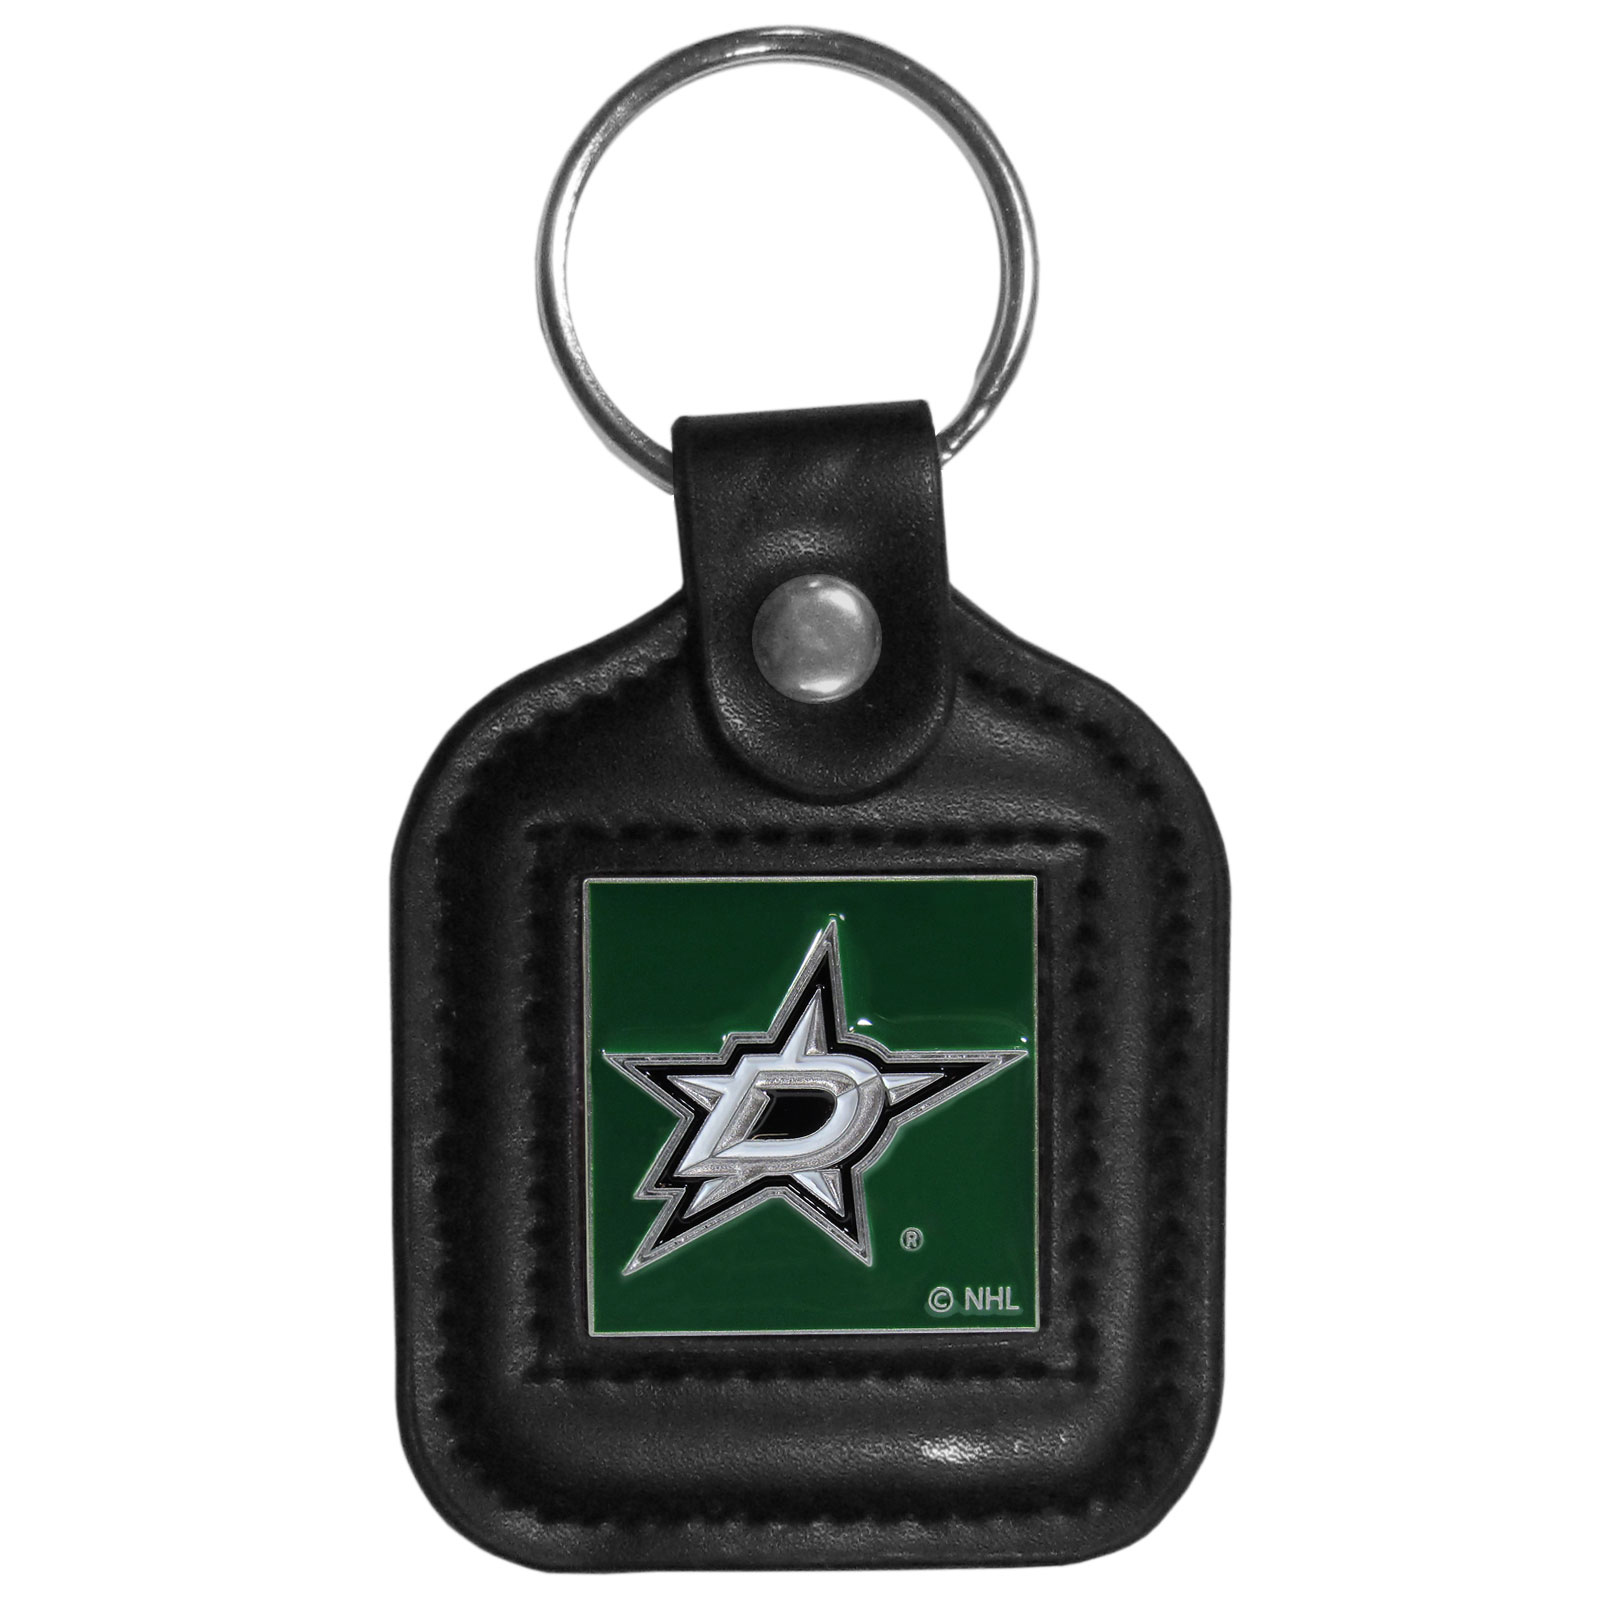 Dallas Stars™ Square Leatherette Key Chain - Our Dallas Stars™ black key fob with stitched detail and inlaid, metal team emblem with enameled color details.